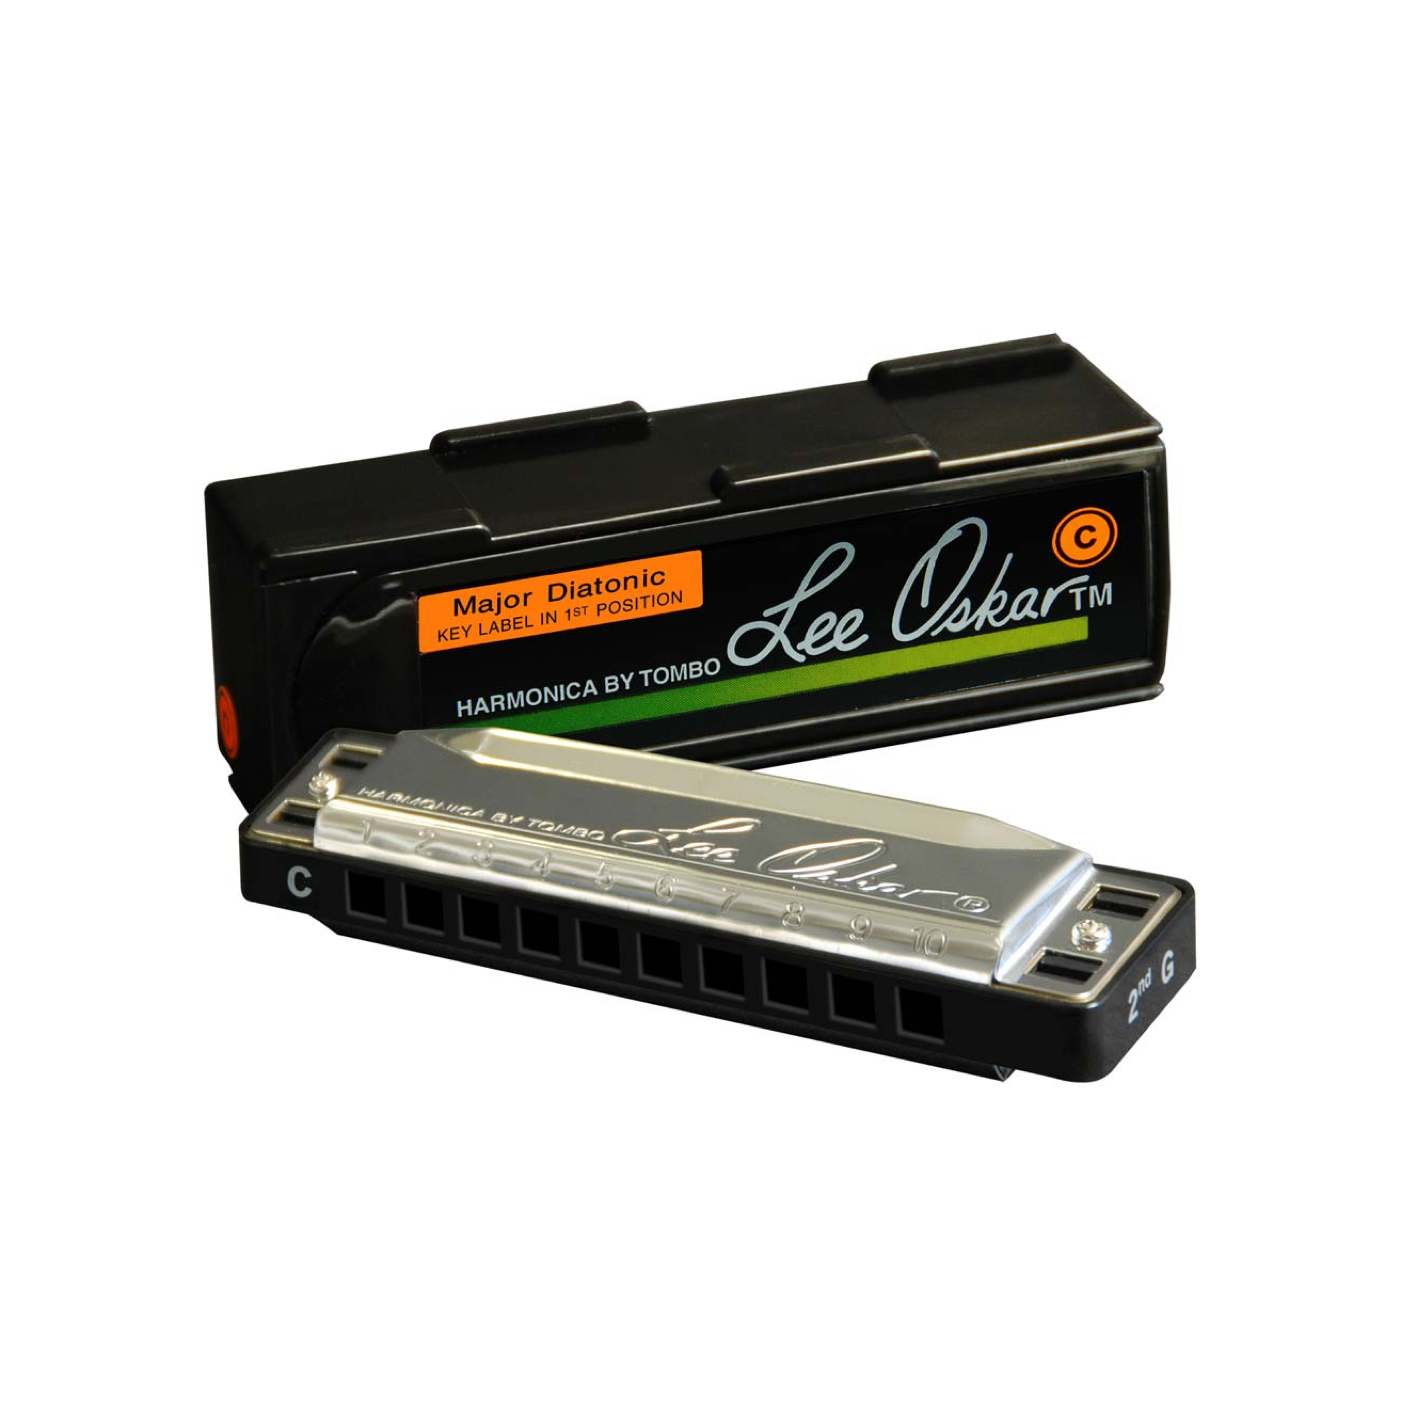 LEE OSKAR HARMONICA (VARIOUS KEYS)